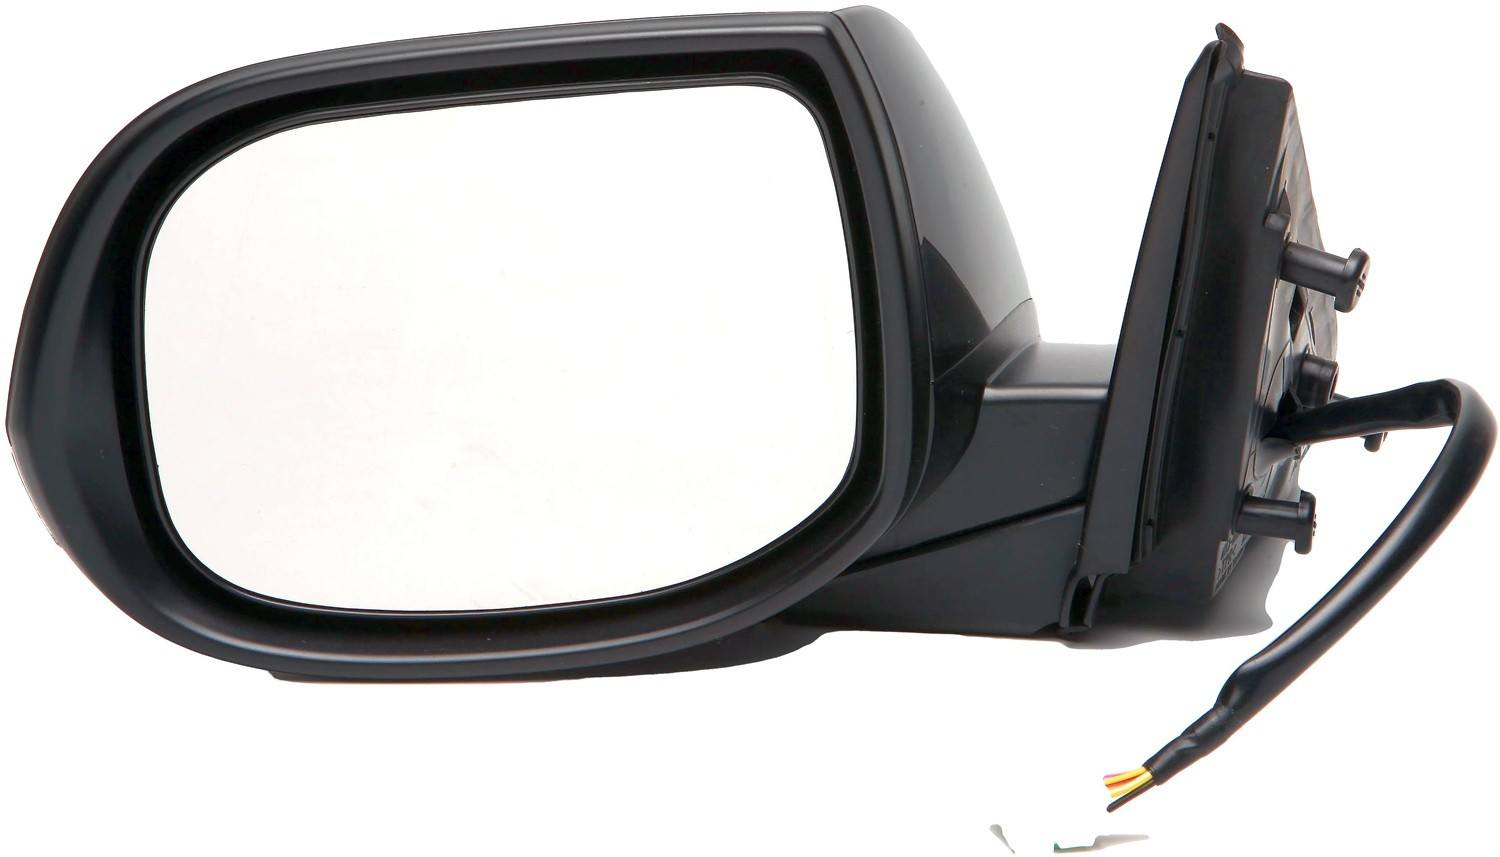 DORMAN - Door Mirror Set - DOR 955-1689